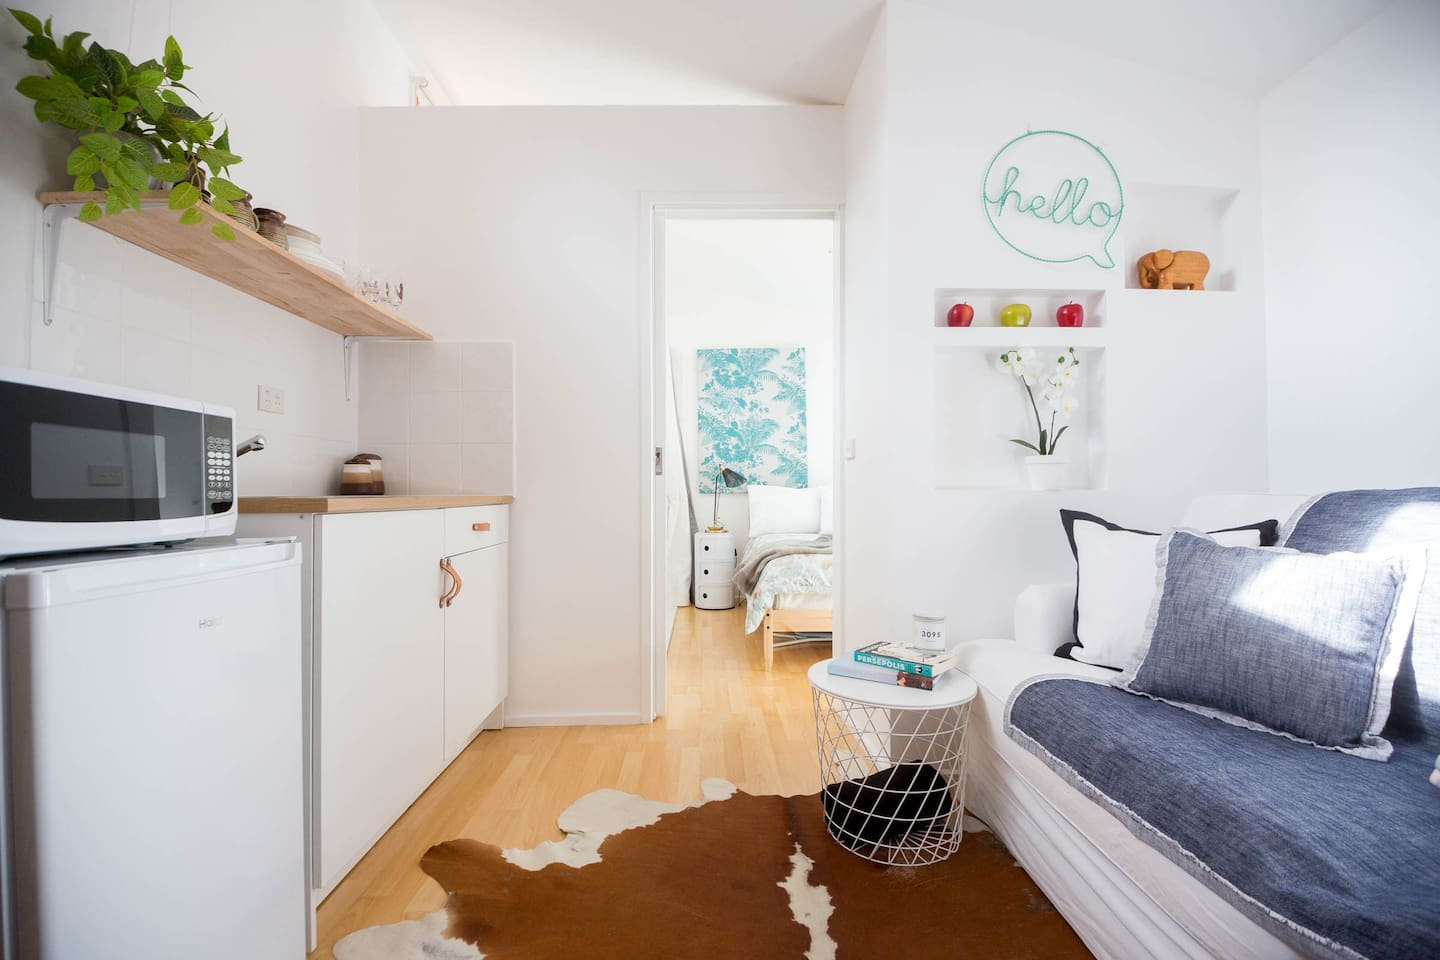 Our cozy small independent studio is located in central Eltham walking distance to Montsalvat and Eltham town!